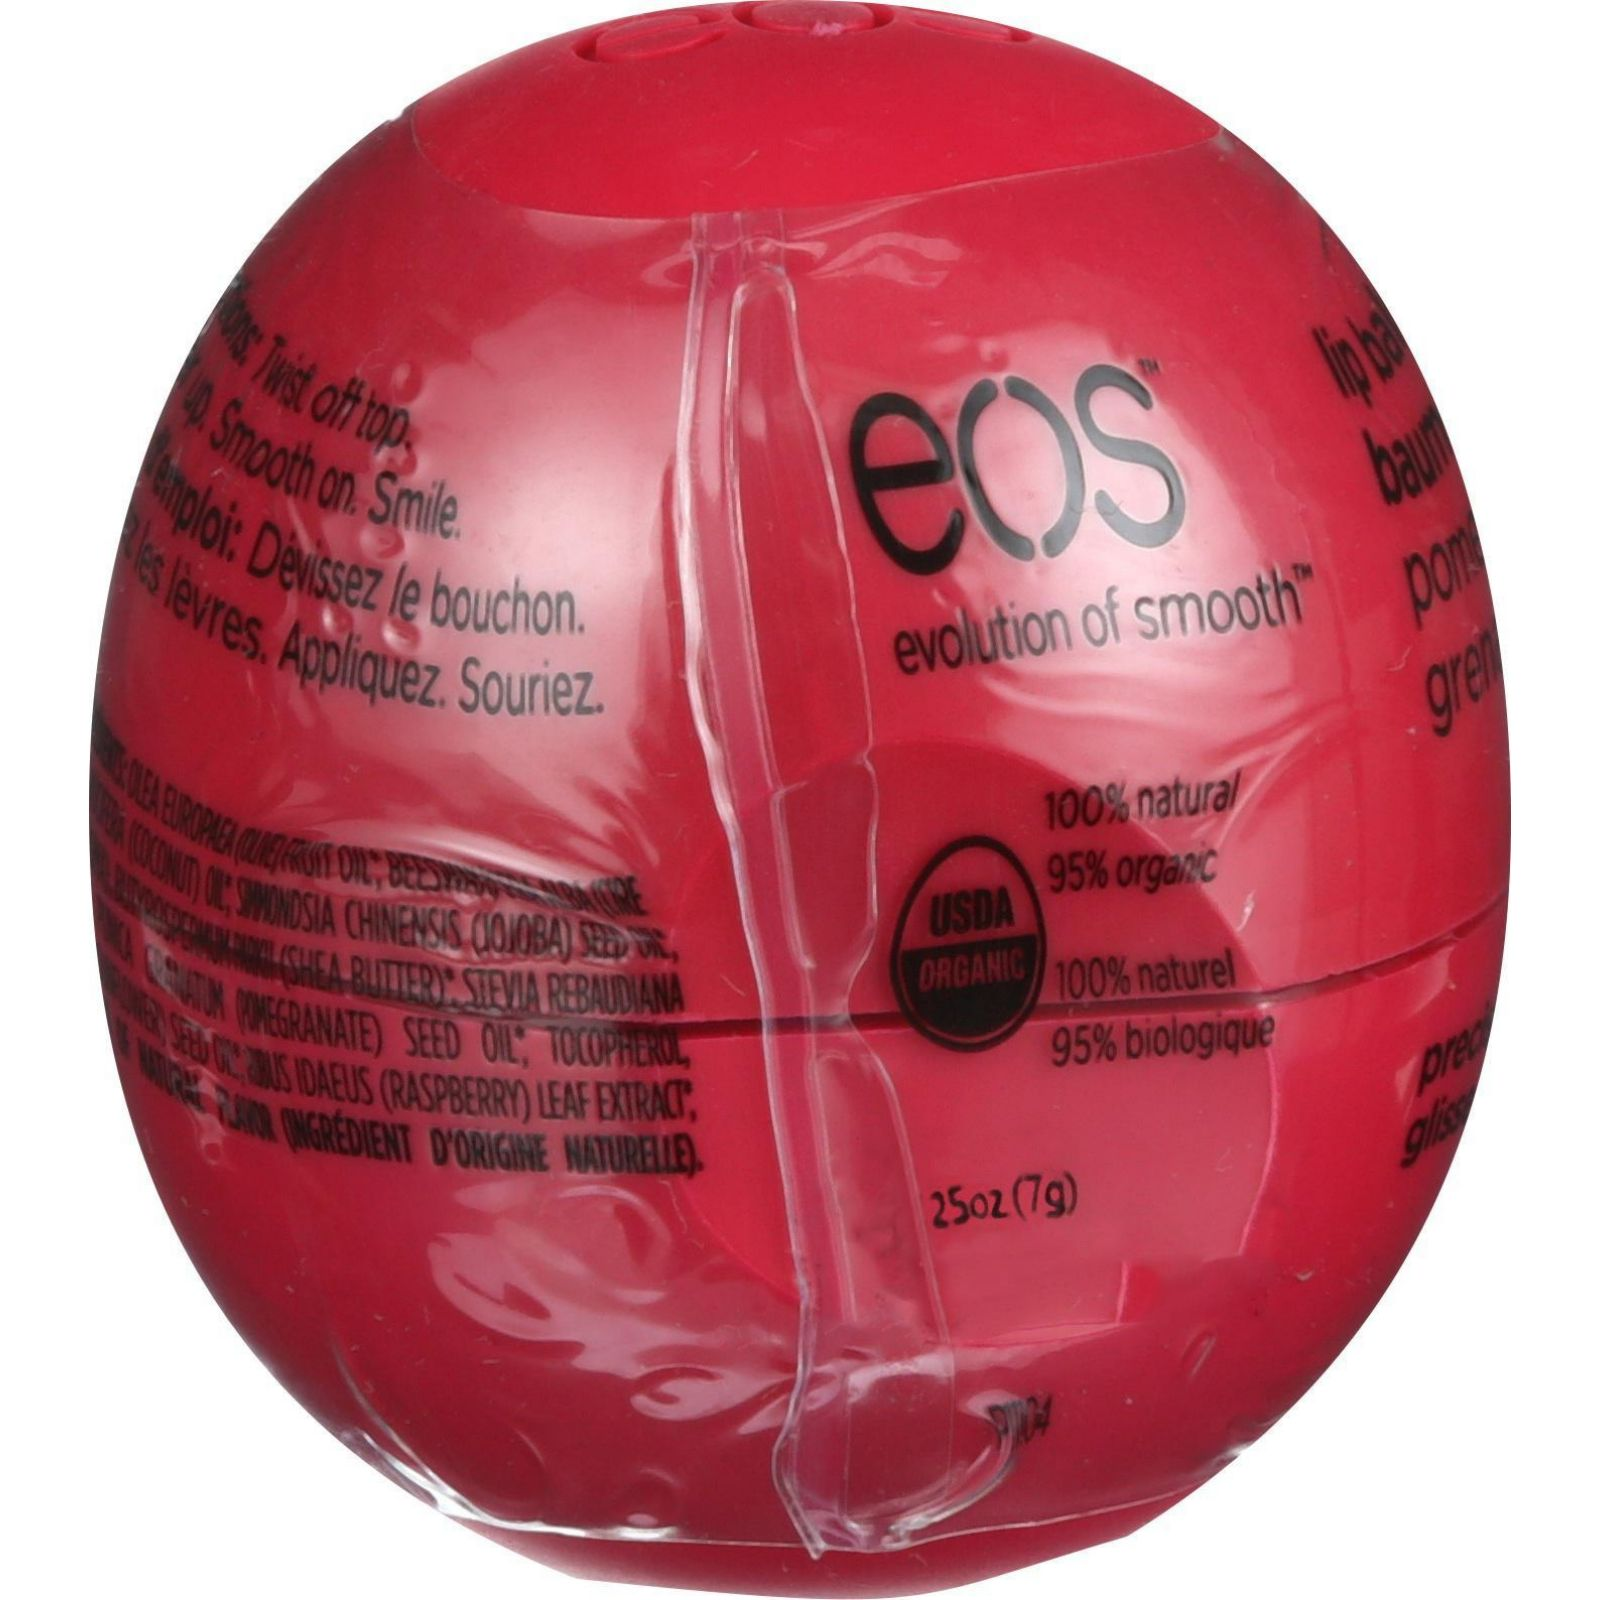 eos Lip Balm, Pomegranate Strawberry, 0.25 oz